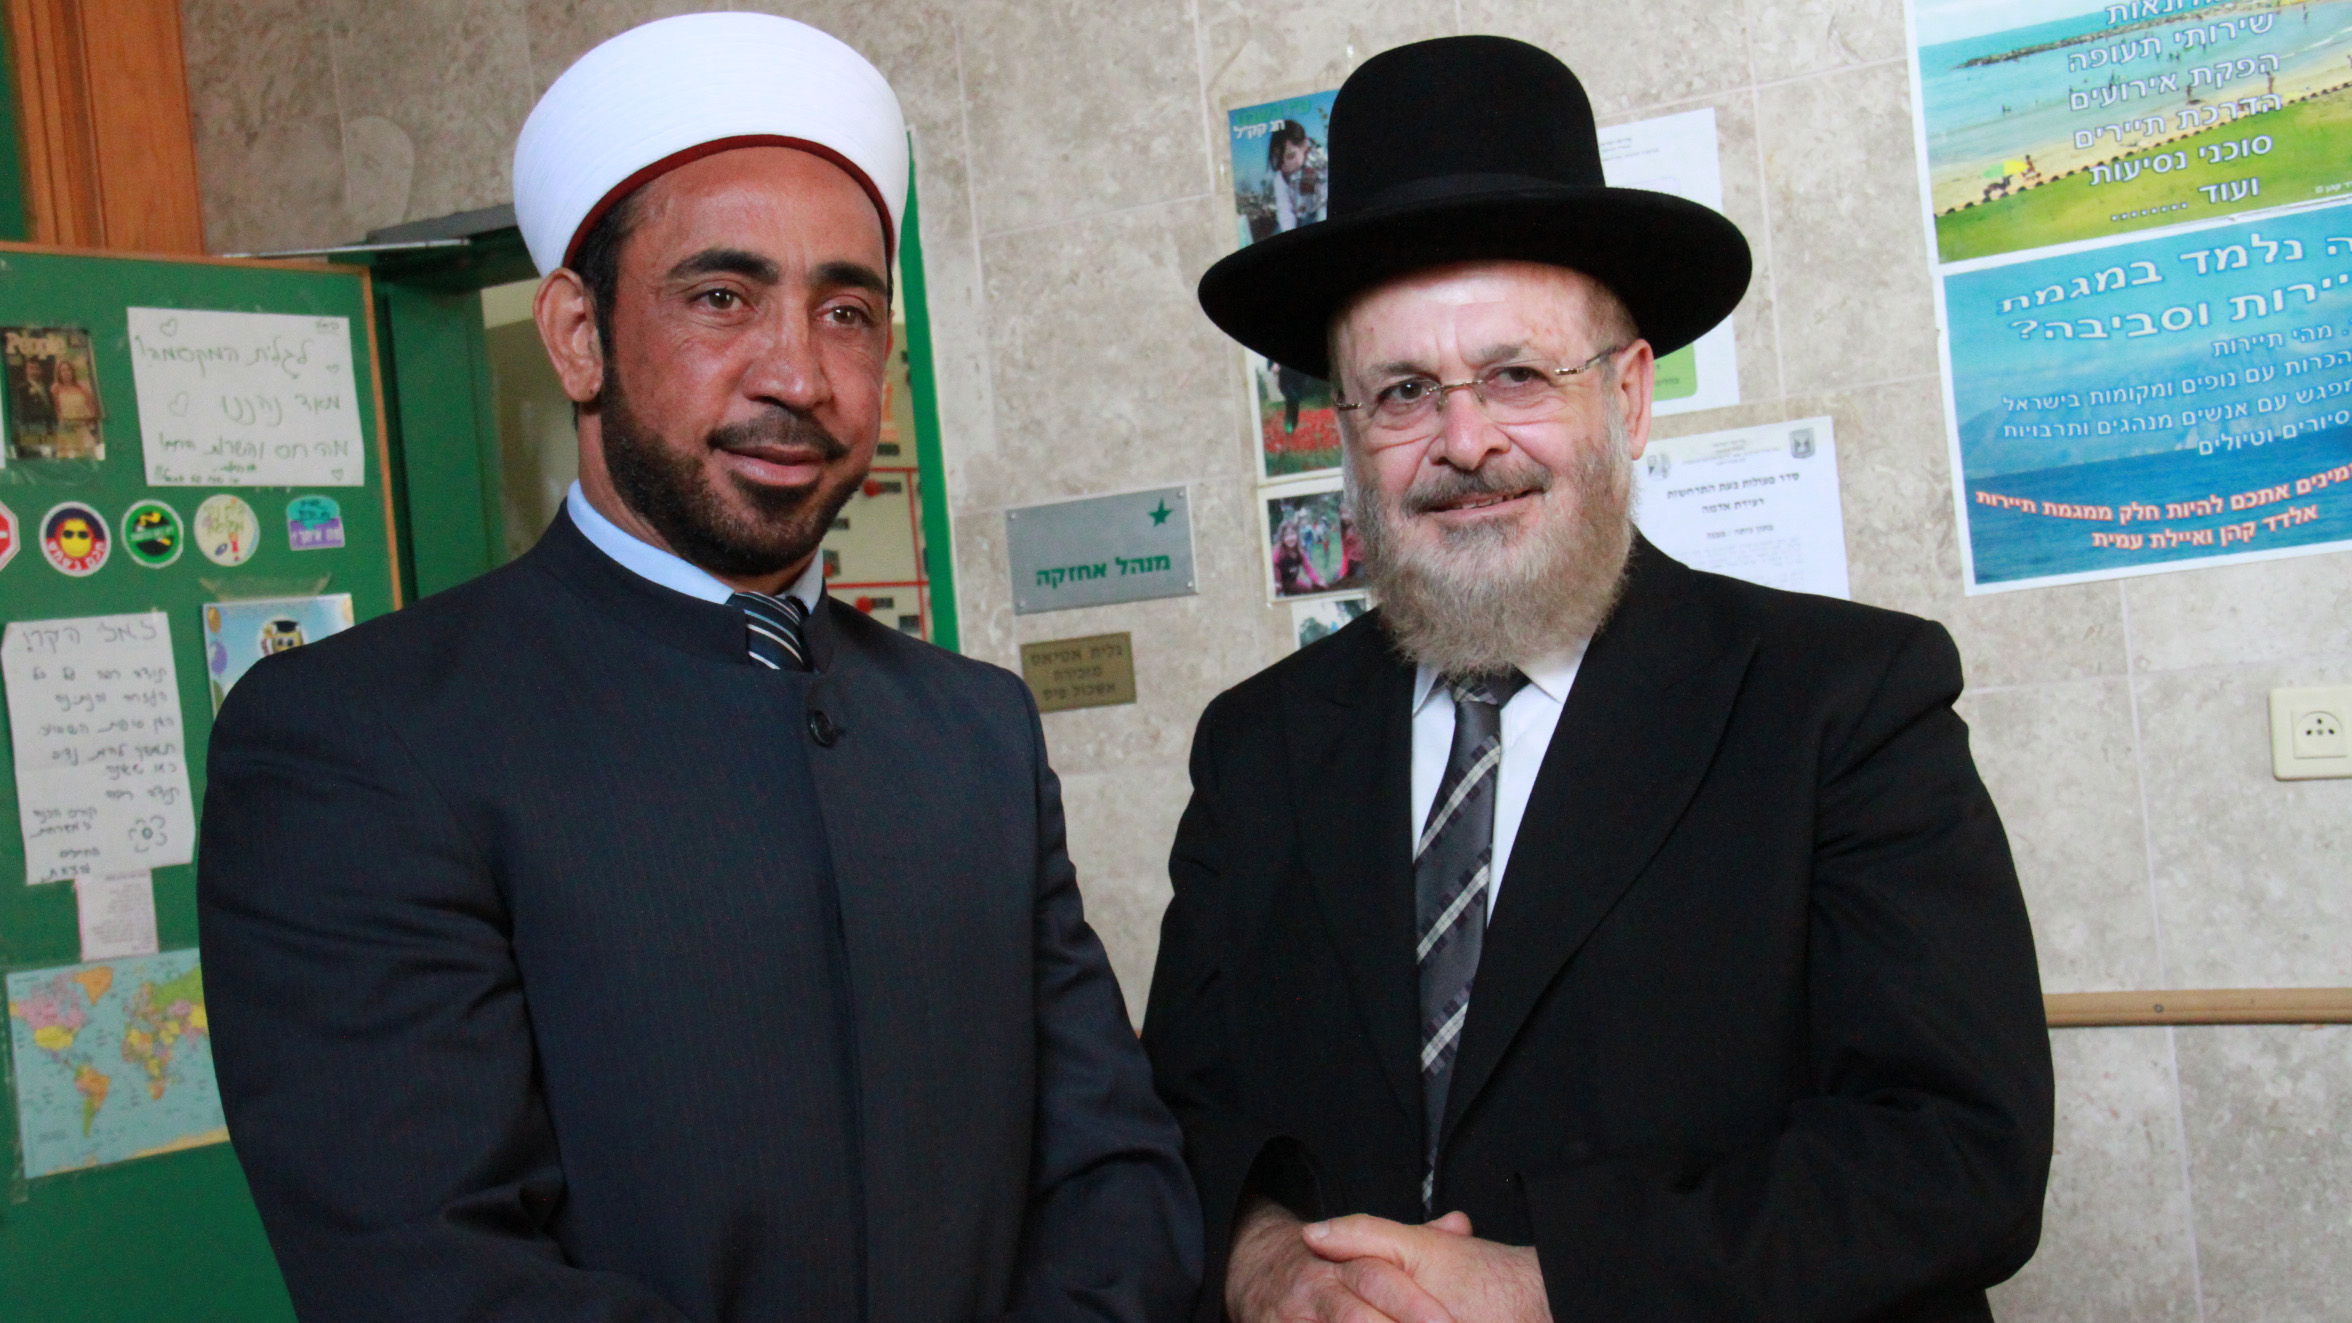 islamic view on israel Why do muslims hate americans  palestinian muslims are citizens of israel, some view the very existence of israel as  an islamic book published in.